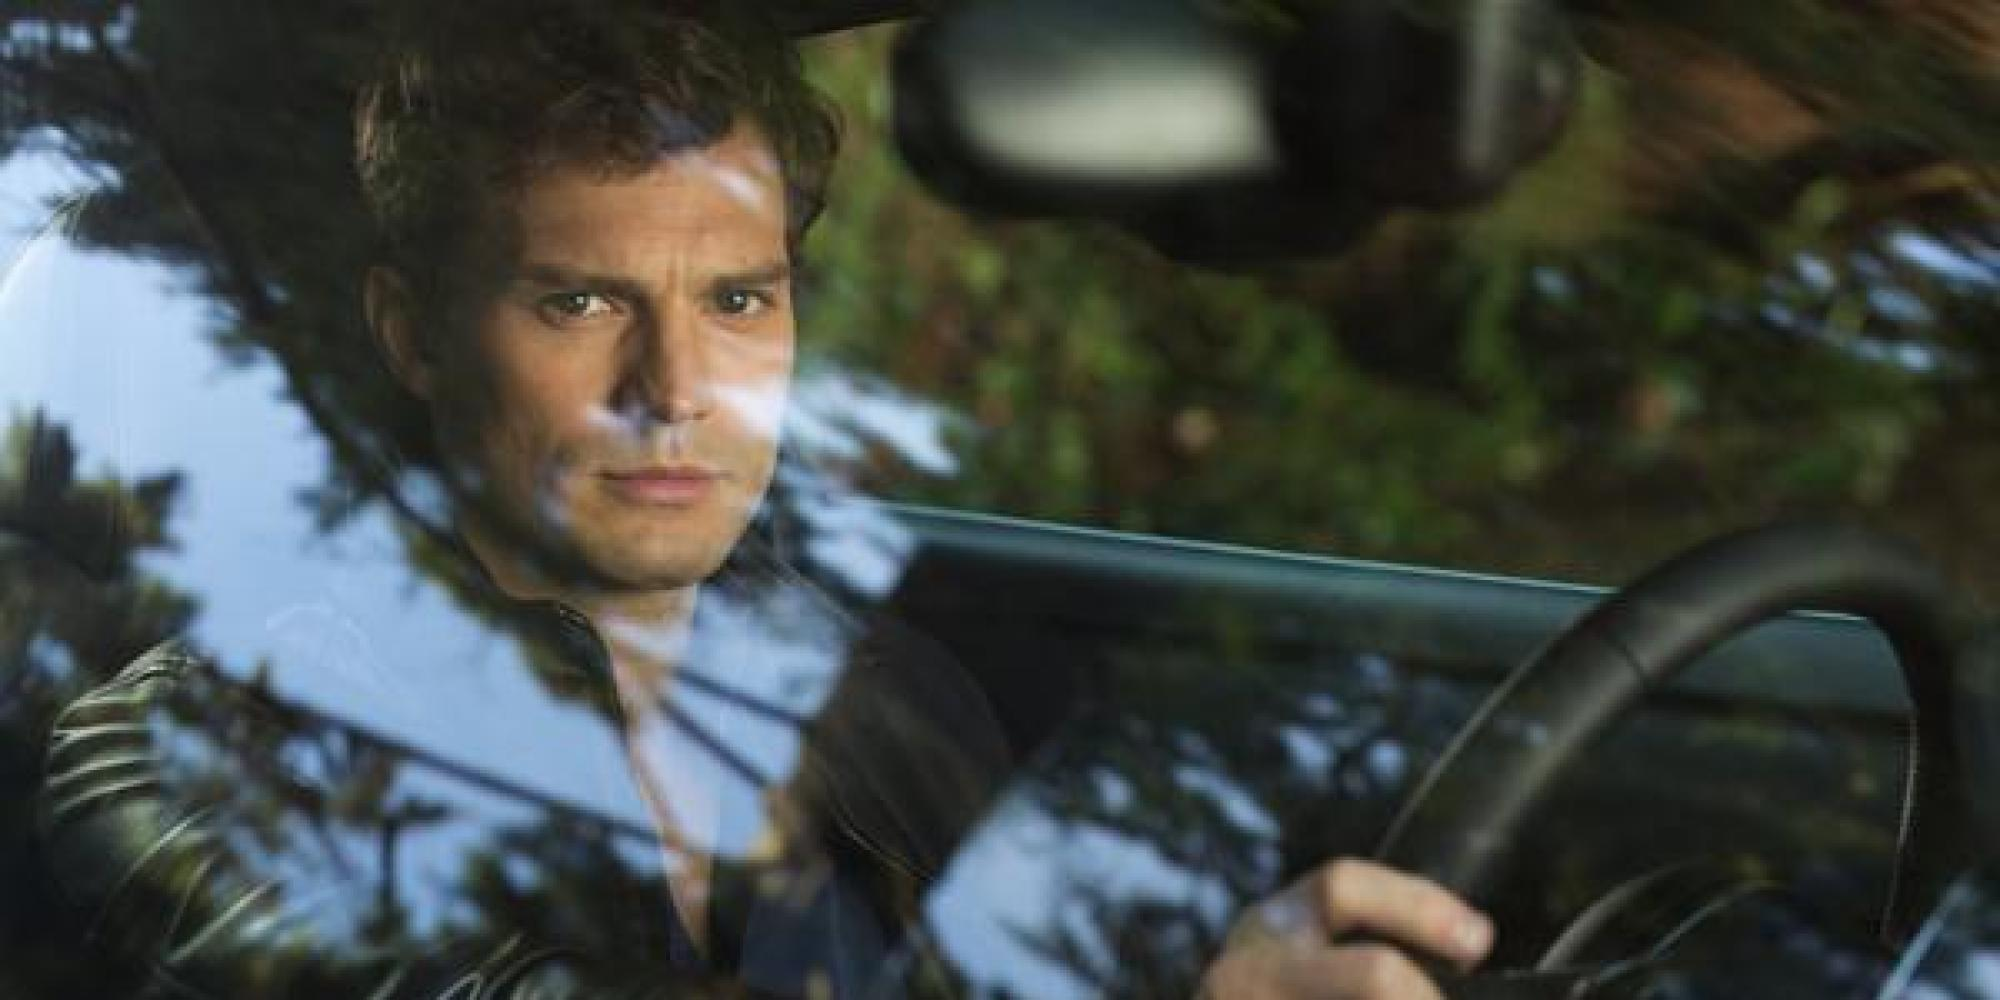 first look at shades of grey shows christian in a car the first look at 50 shades of grey shows christian in a car the huffington post